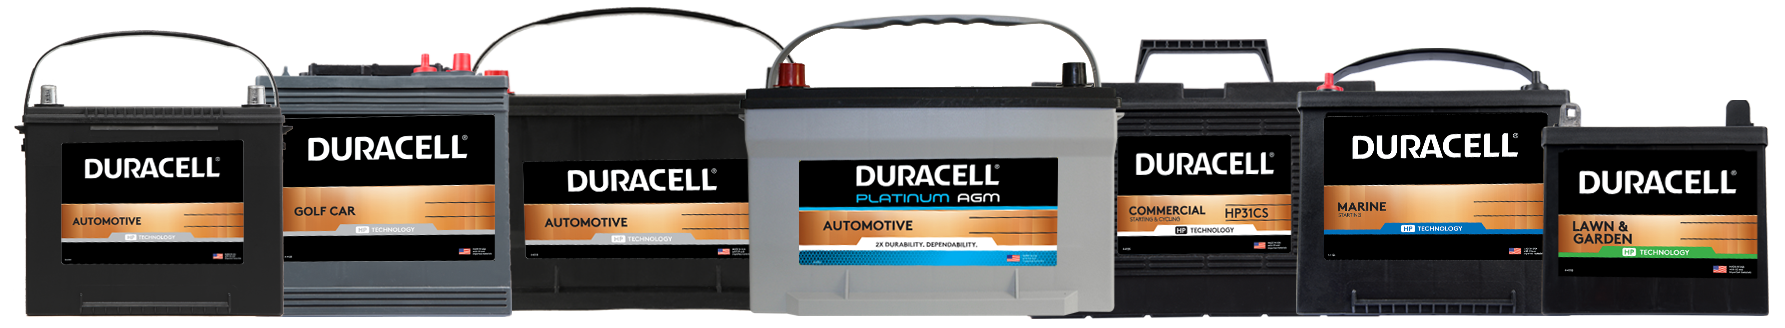 Duracell Car Battery Review >> Duracell Automotive Motorcycle Marine And Commercial Batteries